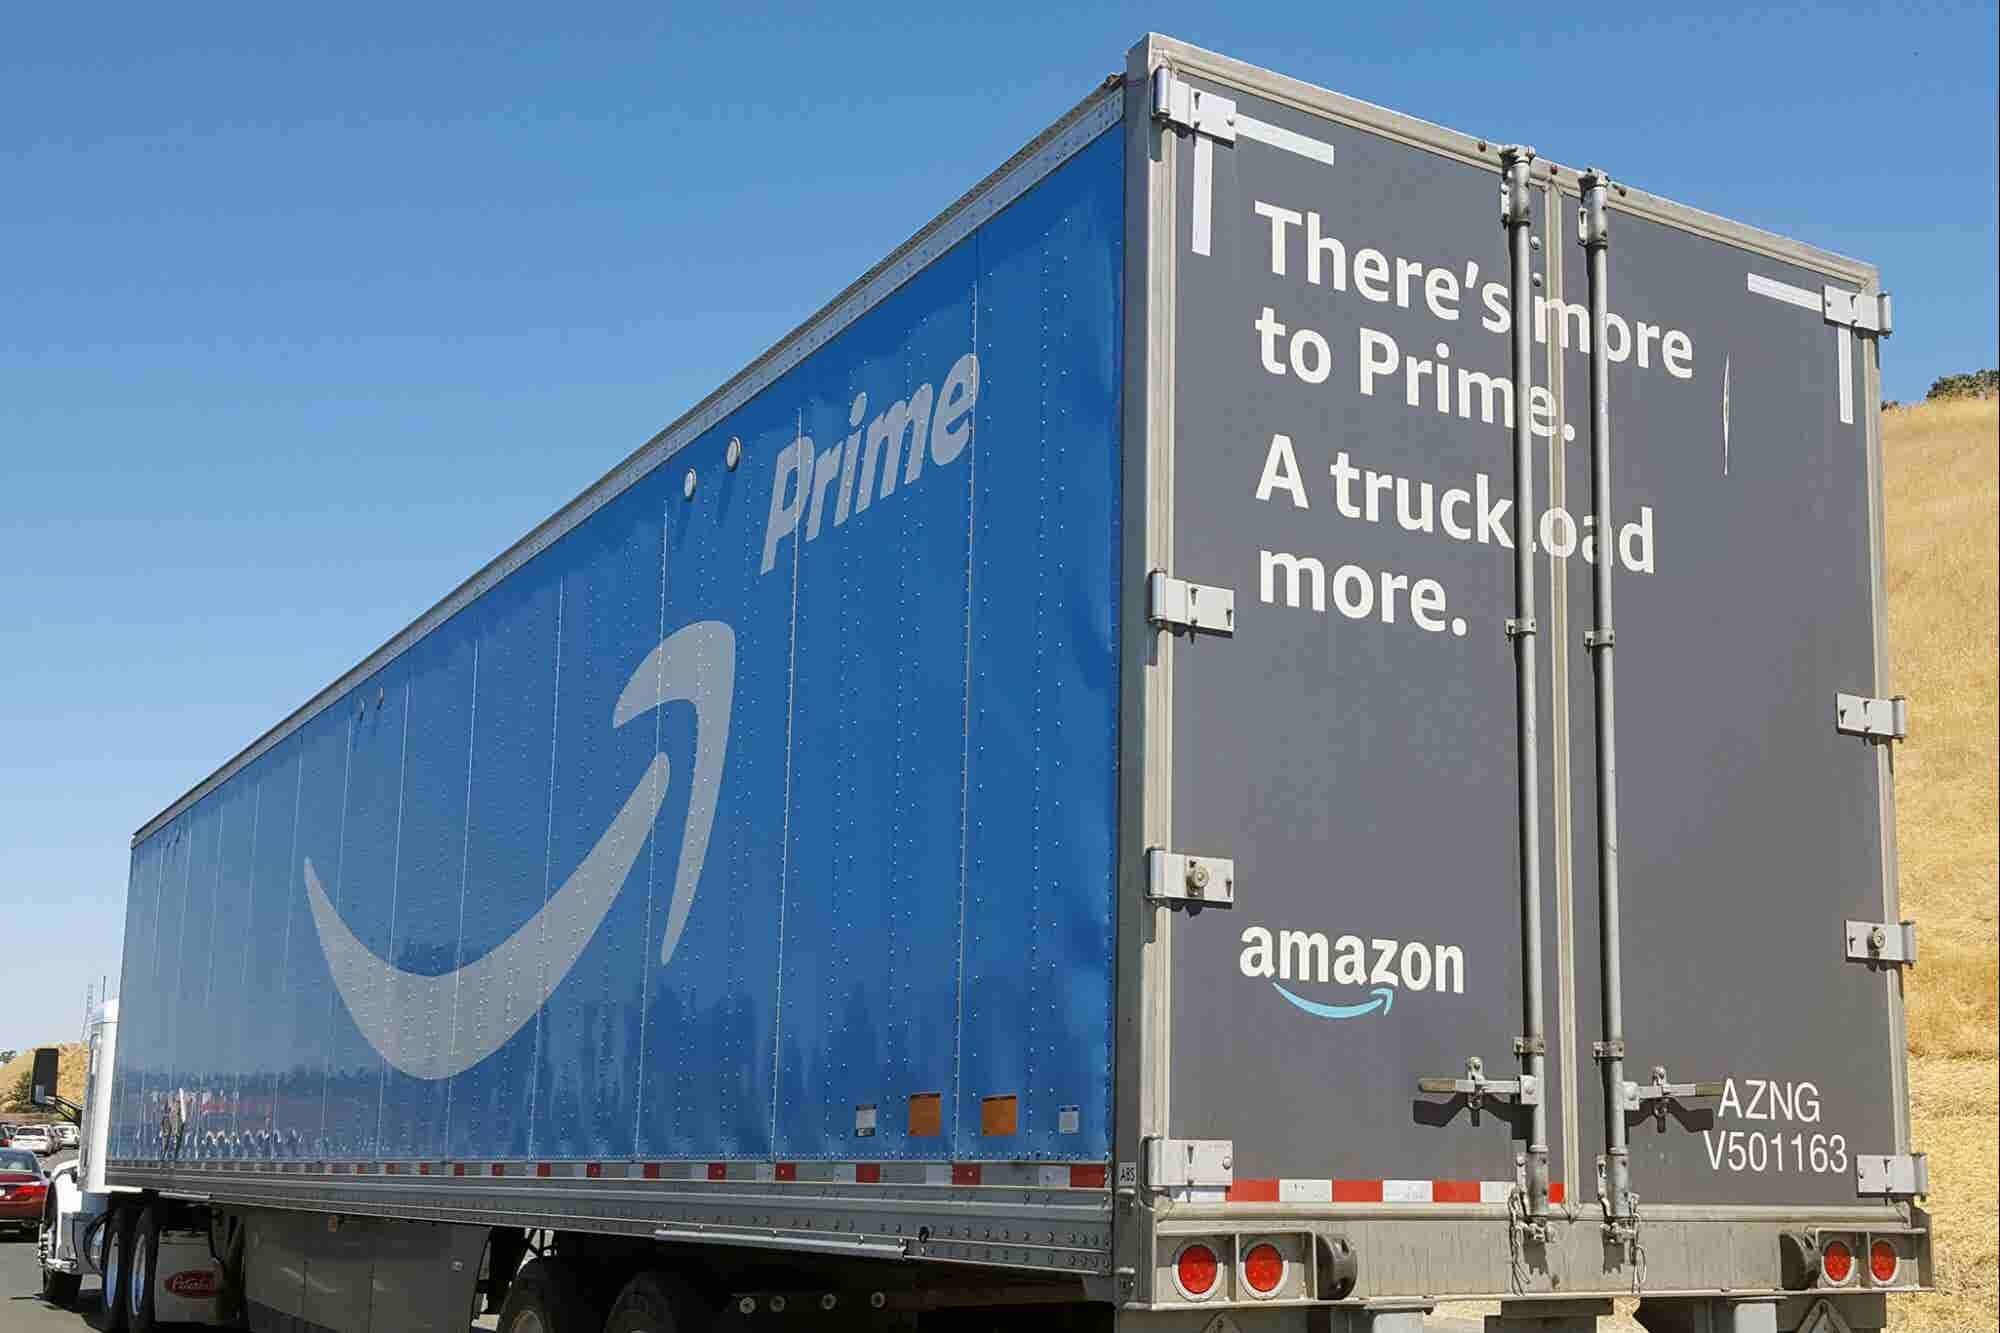 A Recent Shift From Amazon Retail Has Brands Scrambling. What's Next f...